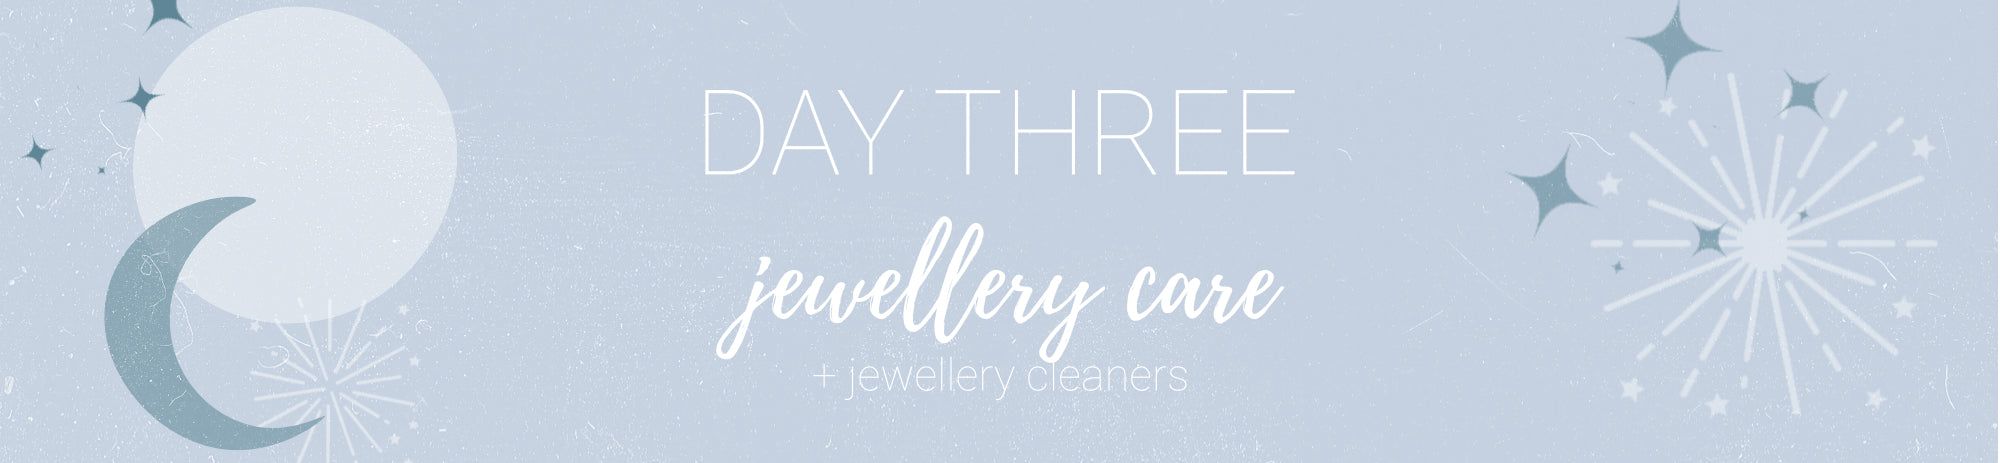 Day three - Jewellery care and cleaners